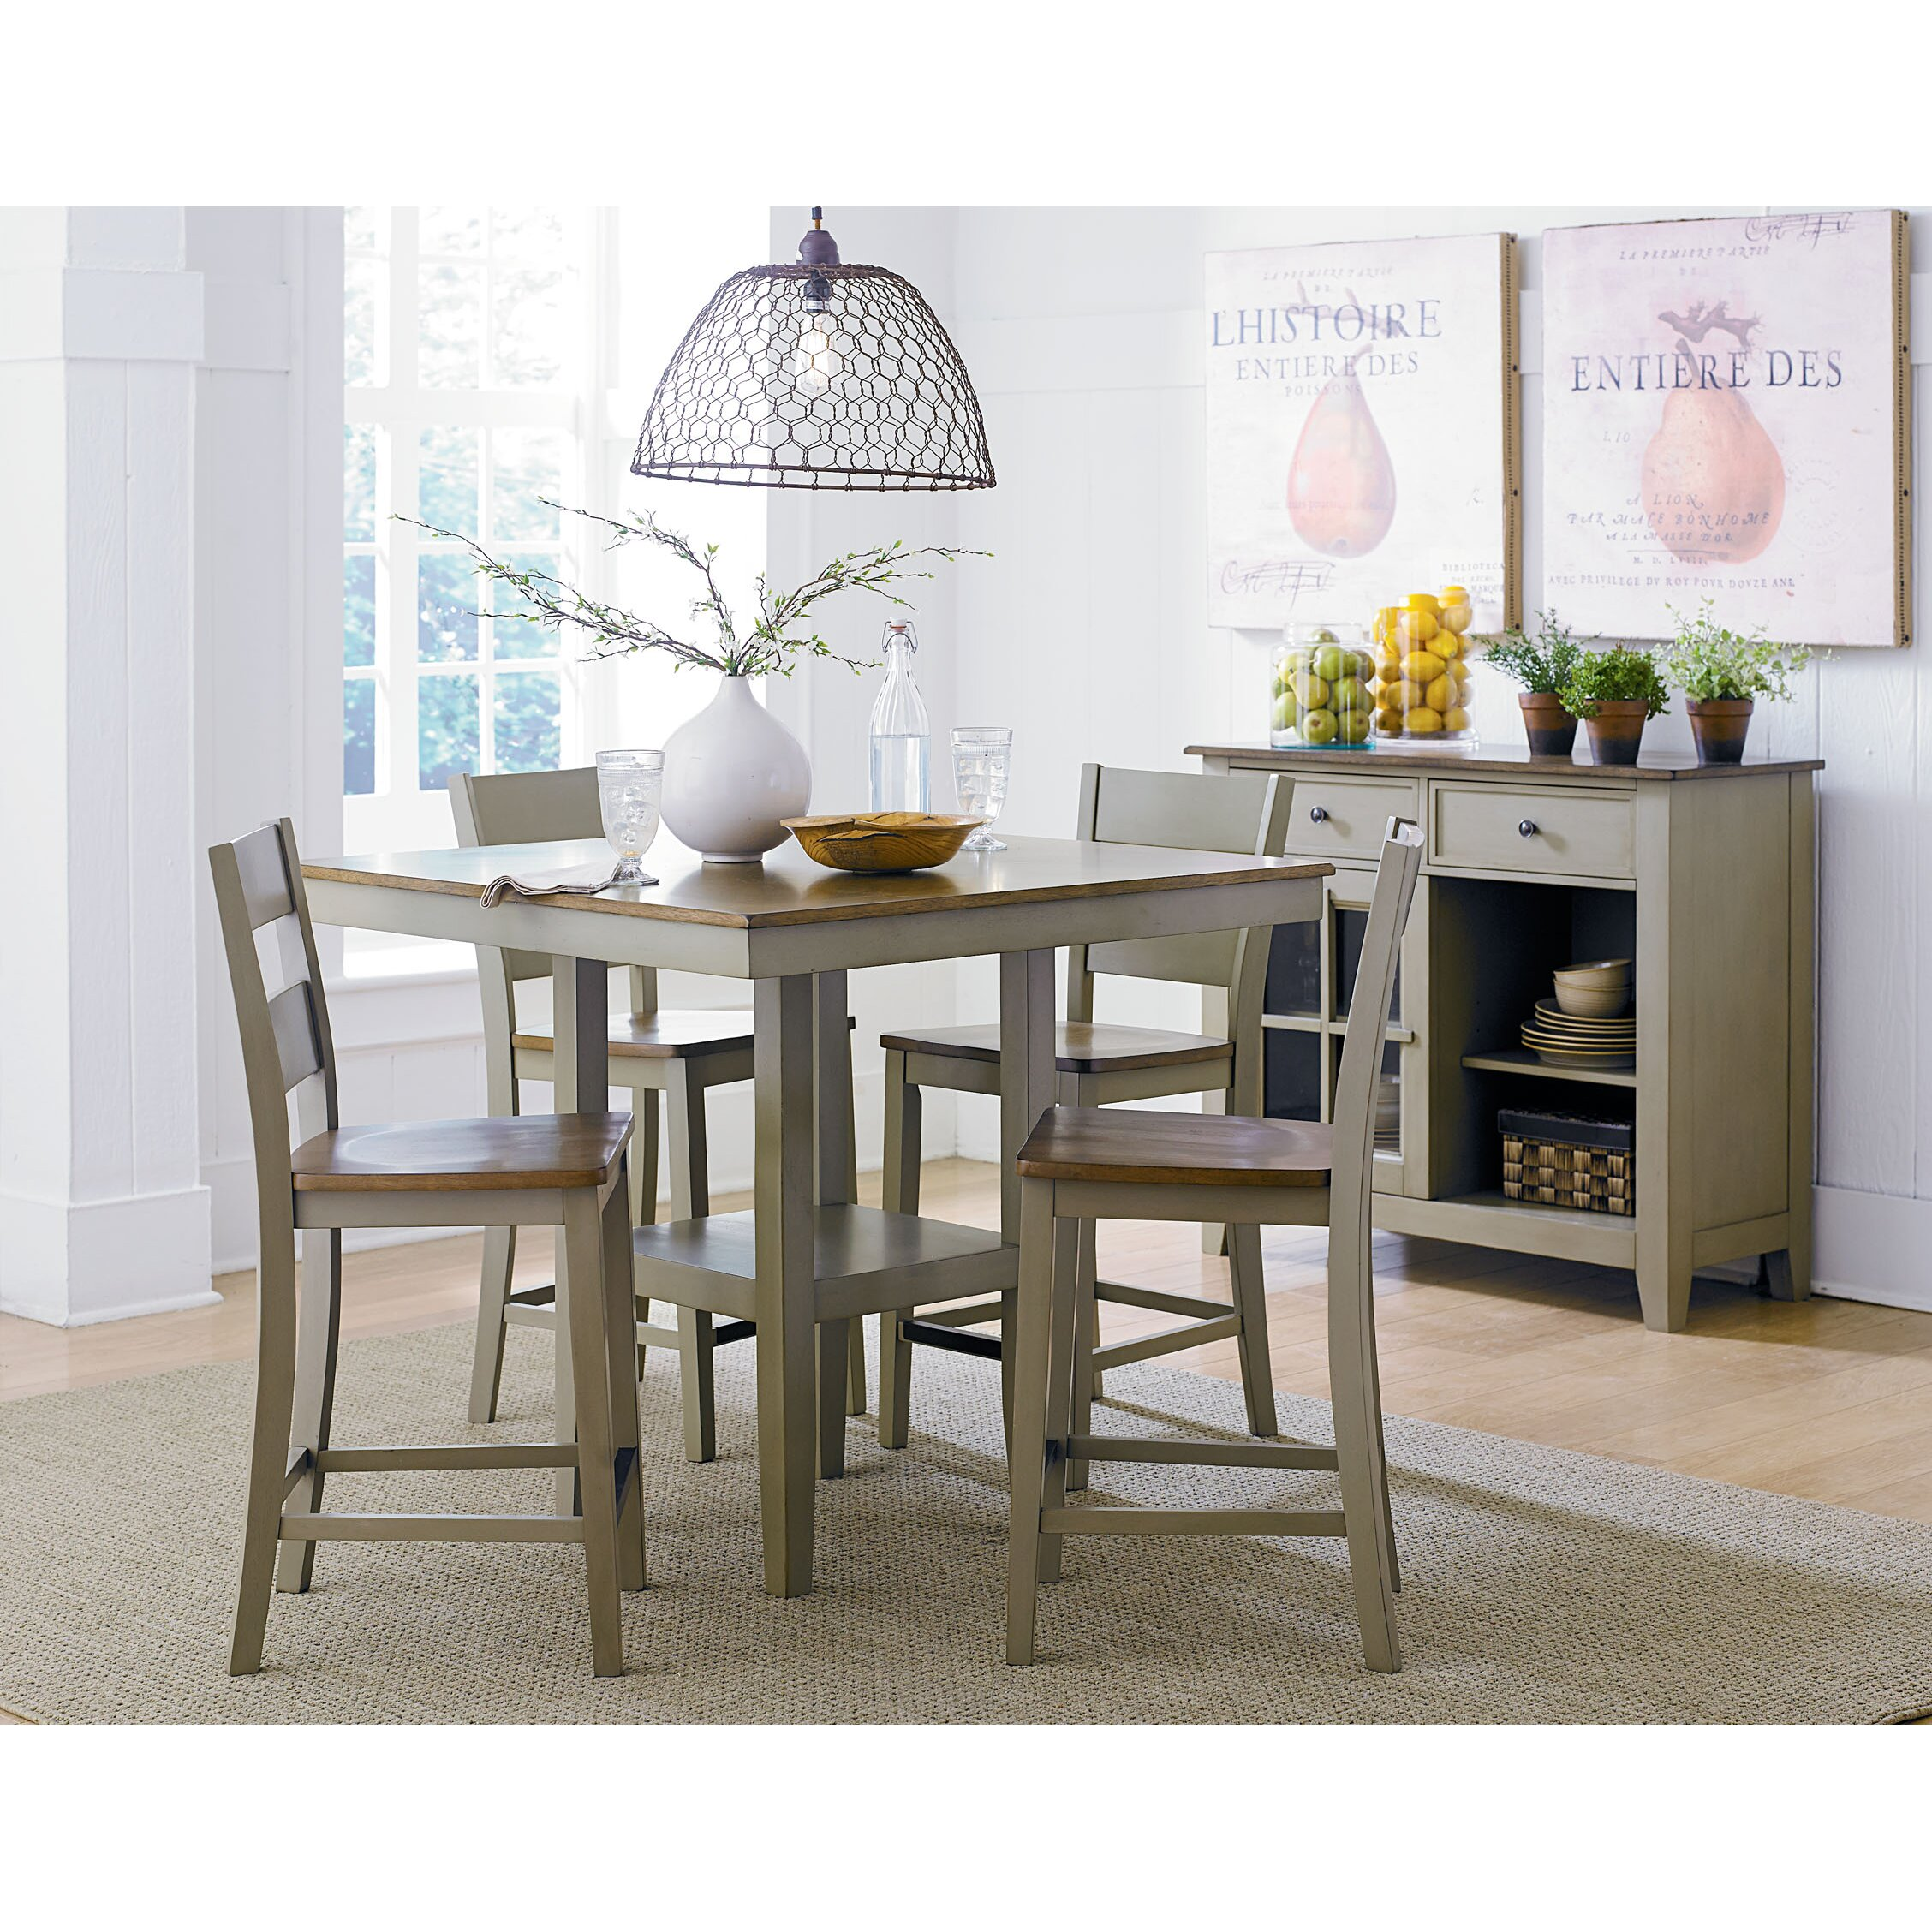 ^ 5 Piece Kitchen & Dining oom Sets You'll Love Wayfair